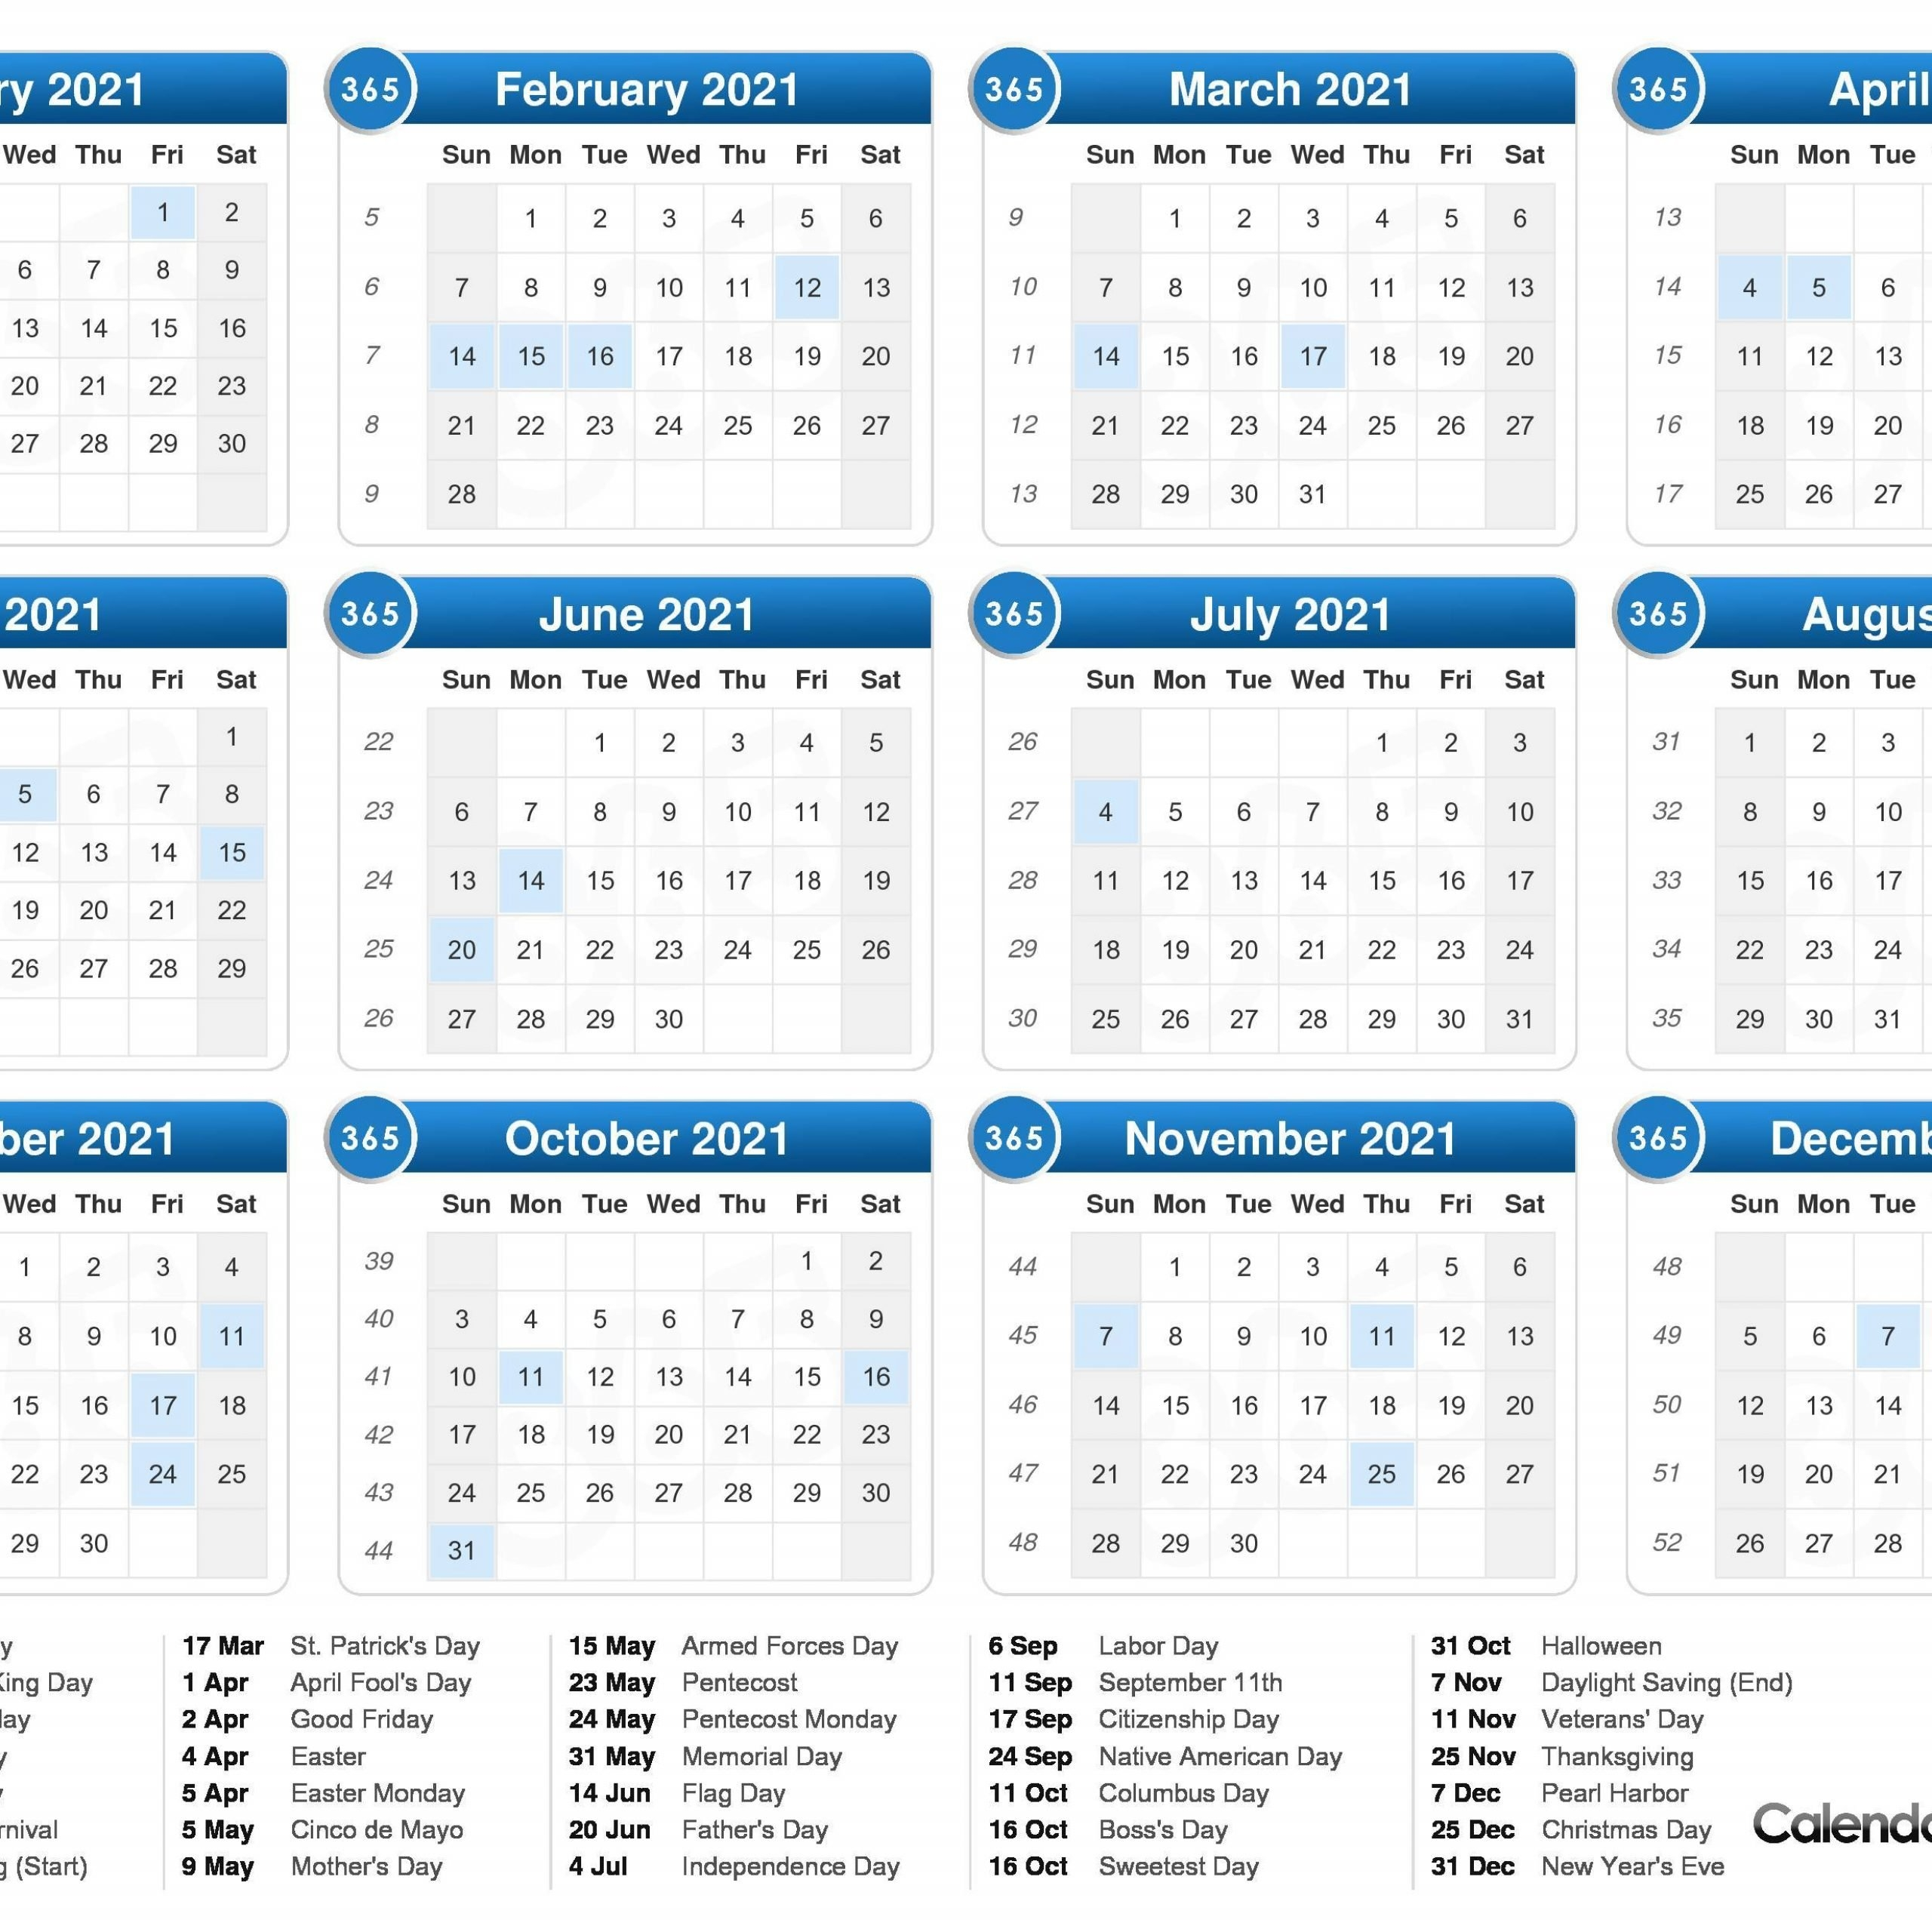 2021 One Page Calendar With Week Numbers | Free Printable Calendar within Printable Weekly Calendar 2021